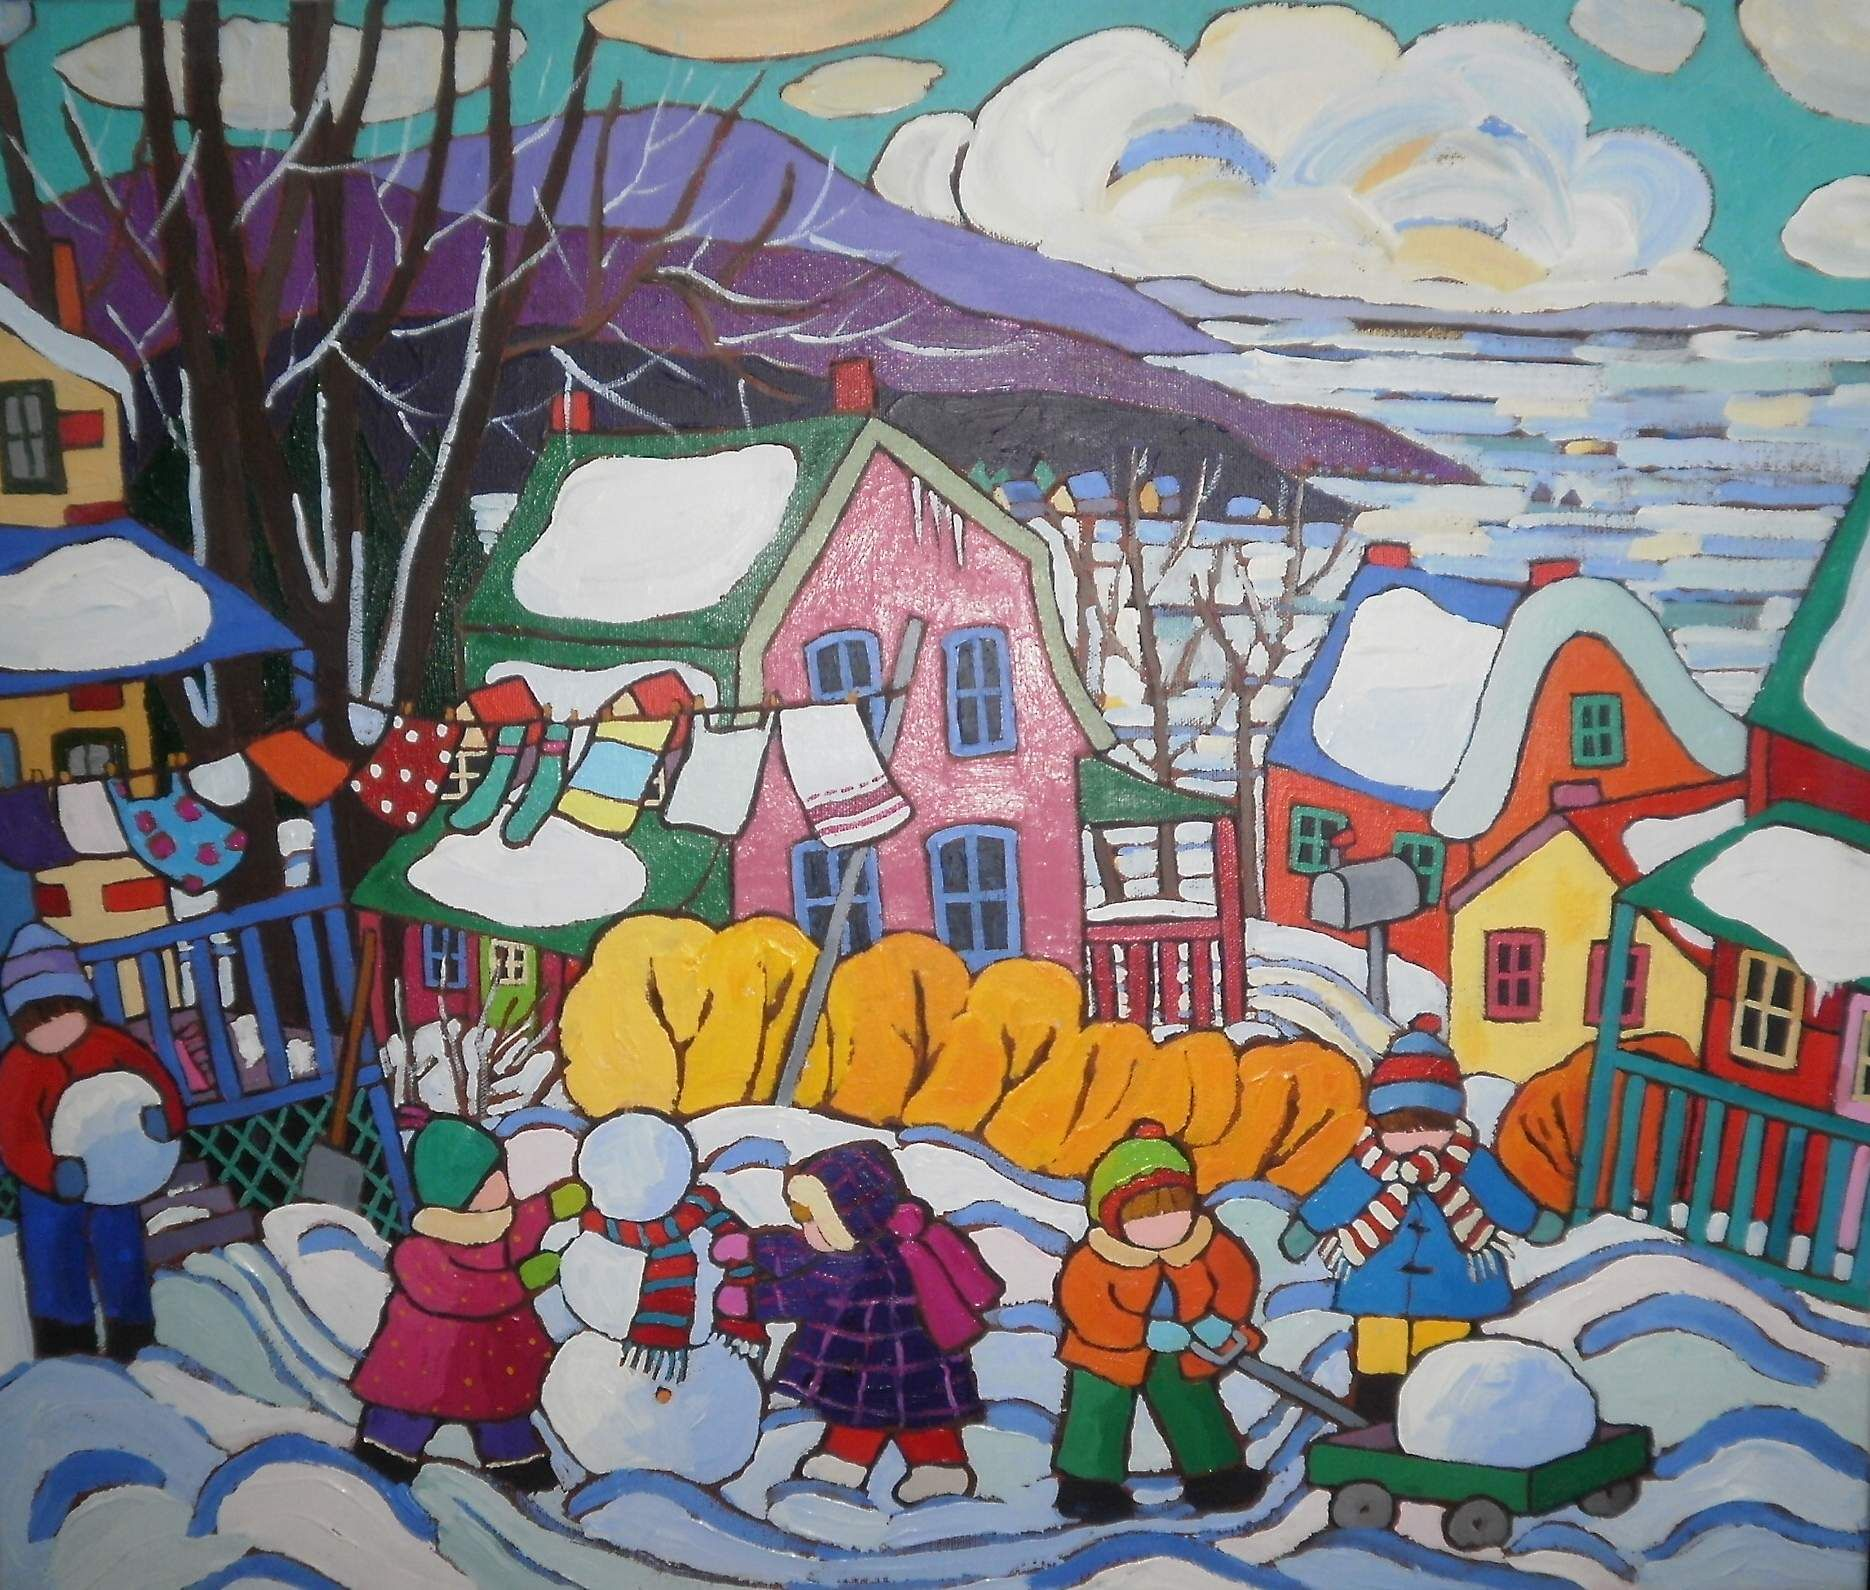 'the snow is so delightful!' selected for 2012 children's